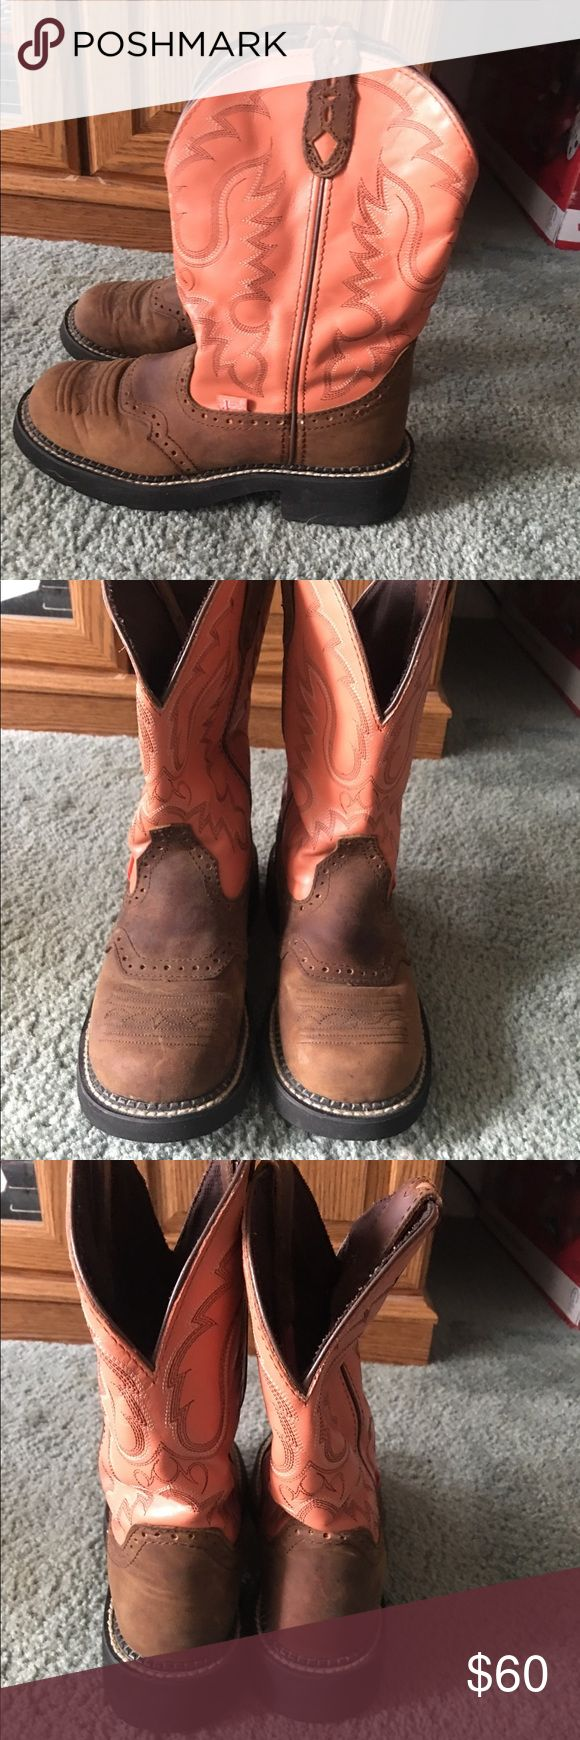 Justin Gypsy Cowgirl Boots Super cute coral Justin Gypsy Cowgirl Boots Justin Boots Shoes Ankle Boots & Booties